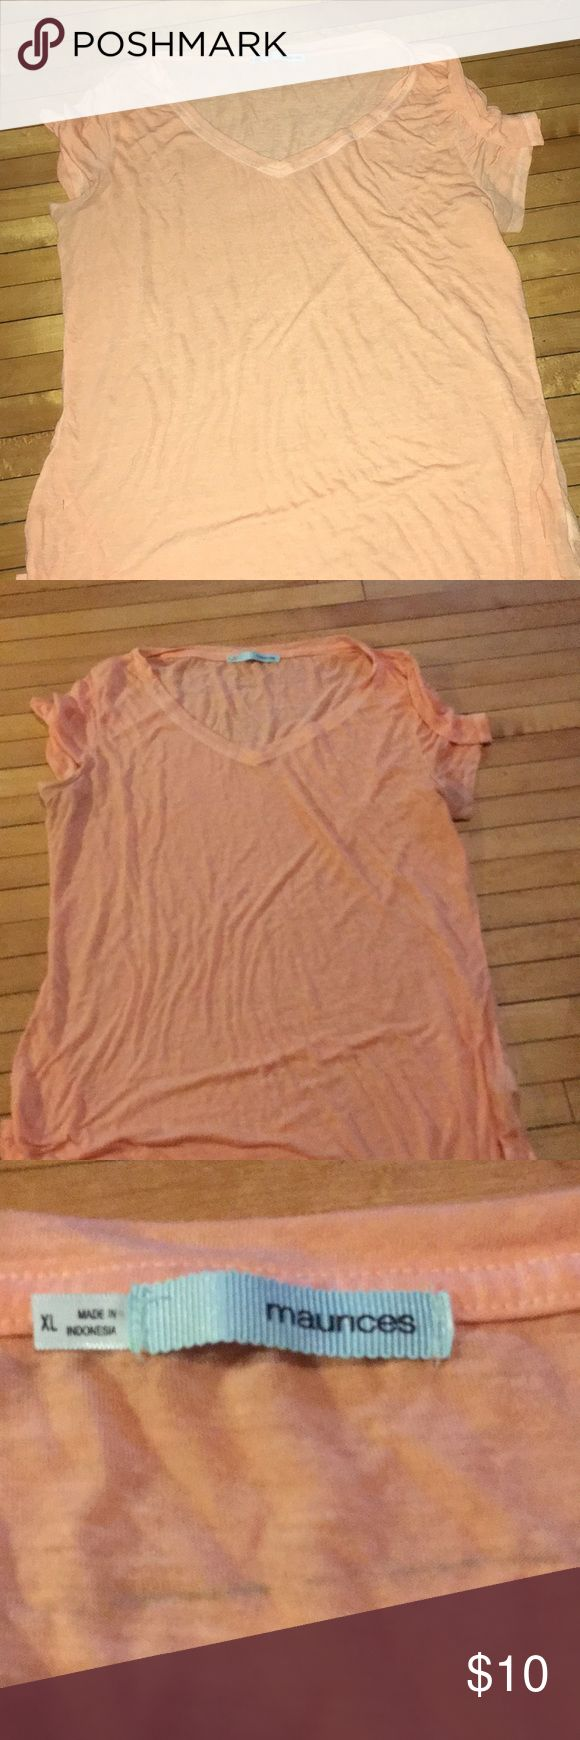 Peach colored Maurices Brand Top Ladies size extra-large, made in Indonesia. Peach colored V-neck T-shirt. Good with or without a belt around the middle. Super cute underneath the fashion jacket. Or Jean jacket. She's a cute diamond in the rough.  A106 Maurices Tops